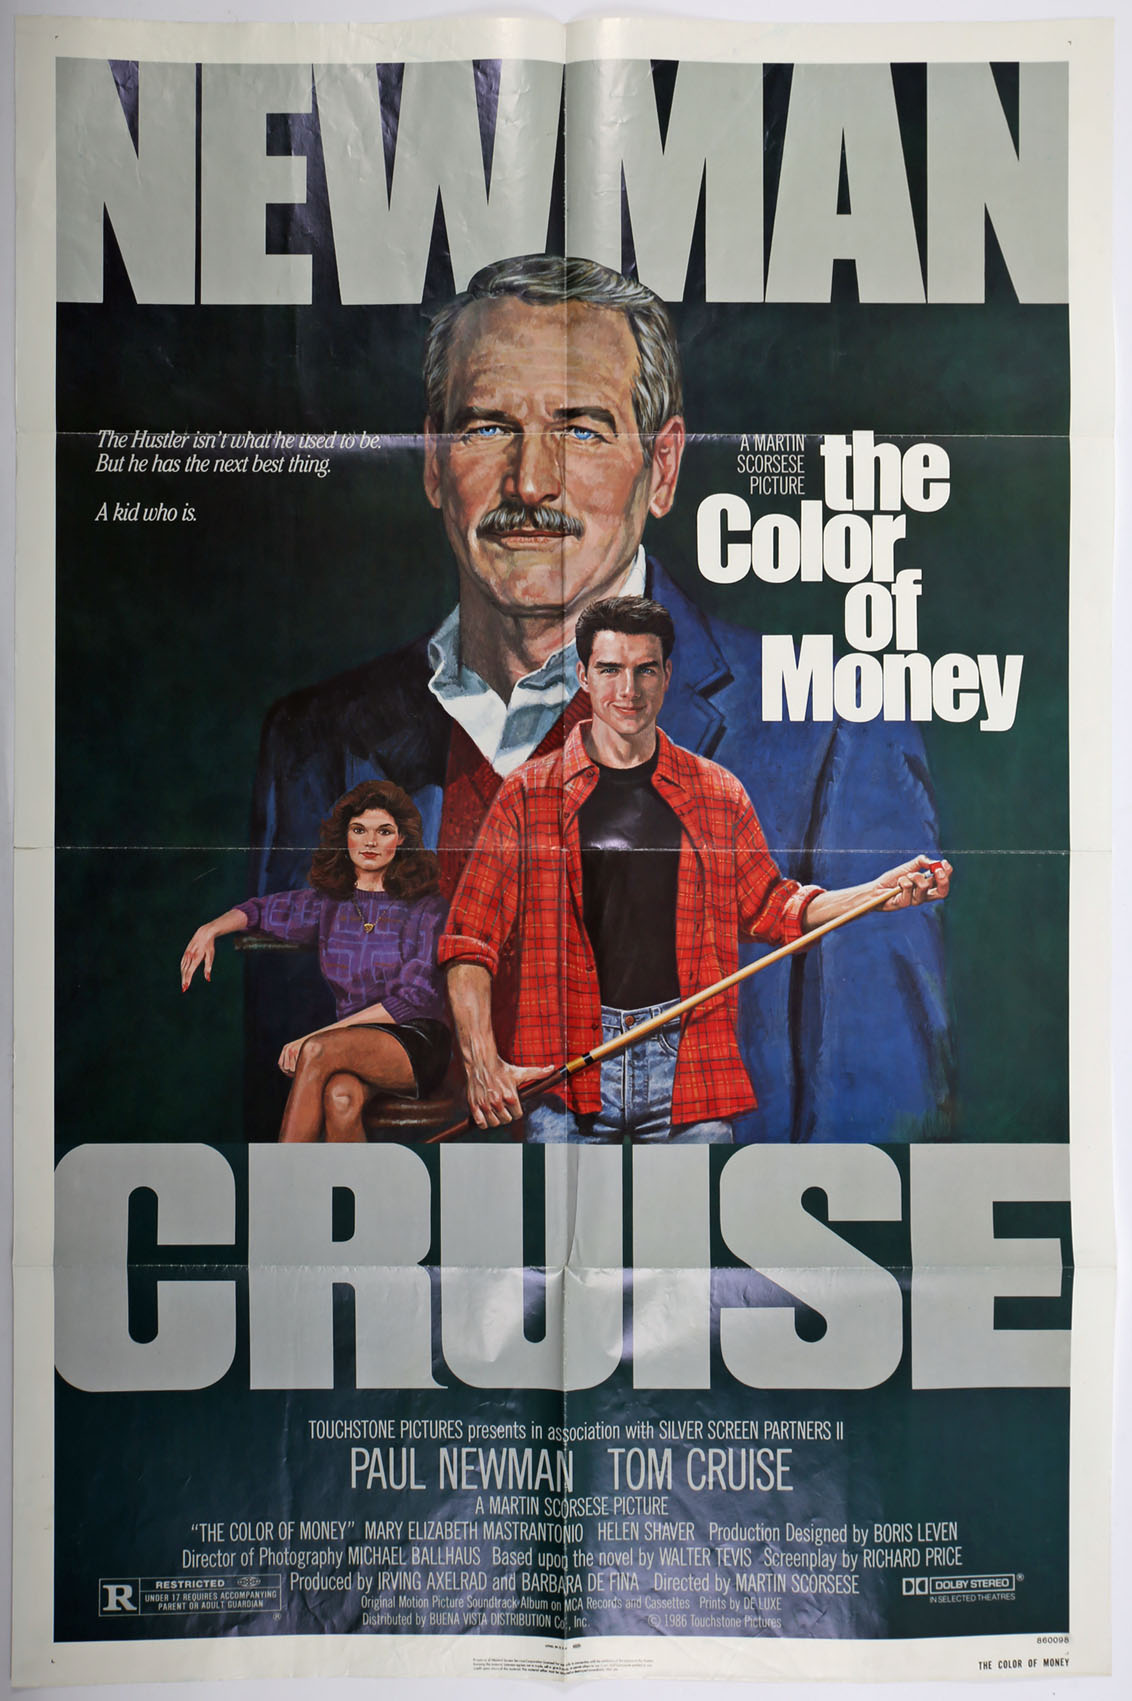 Cinema poster. The Color of Money, 1986, US one-sheet poster for the drama starring Paul Newman, Tom